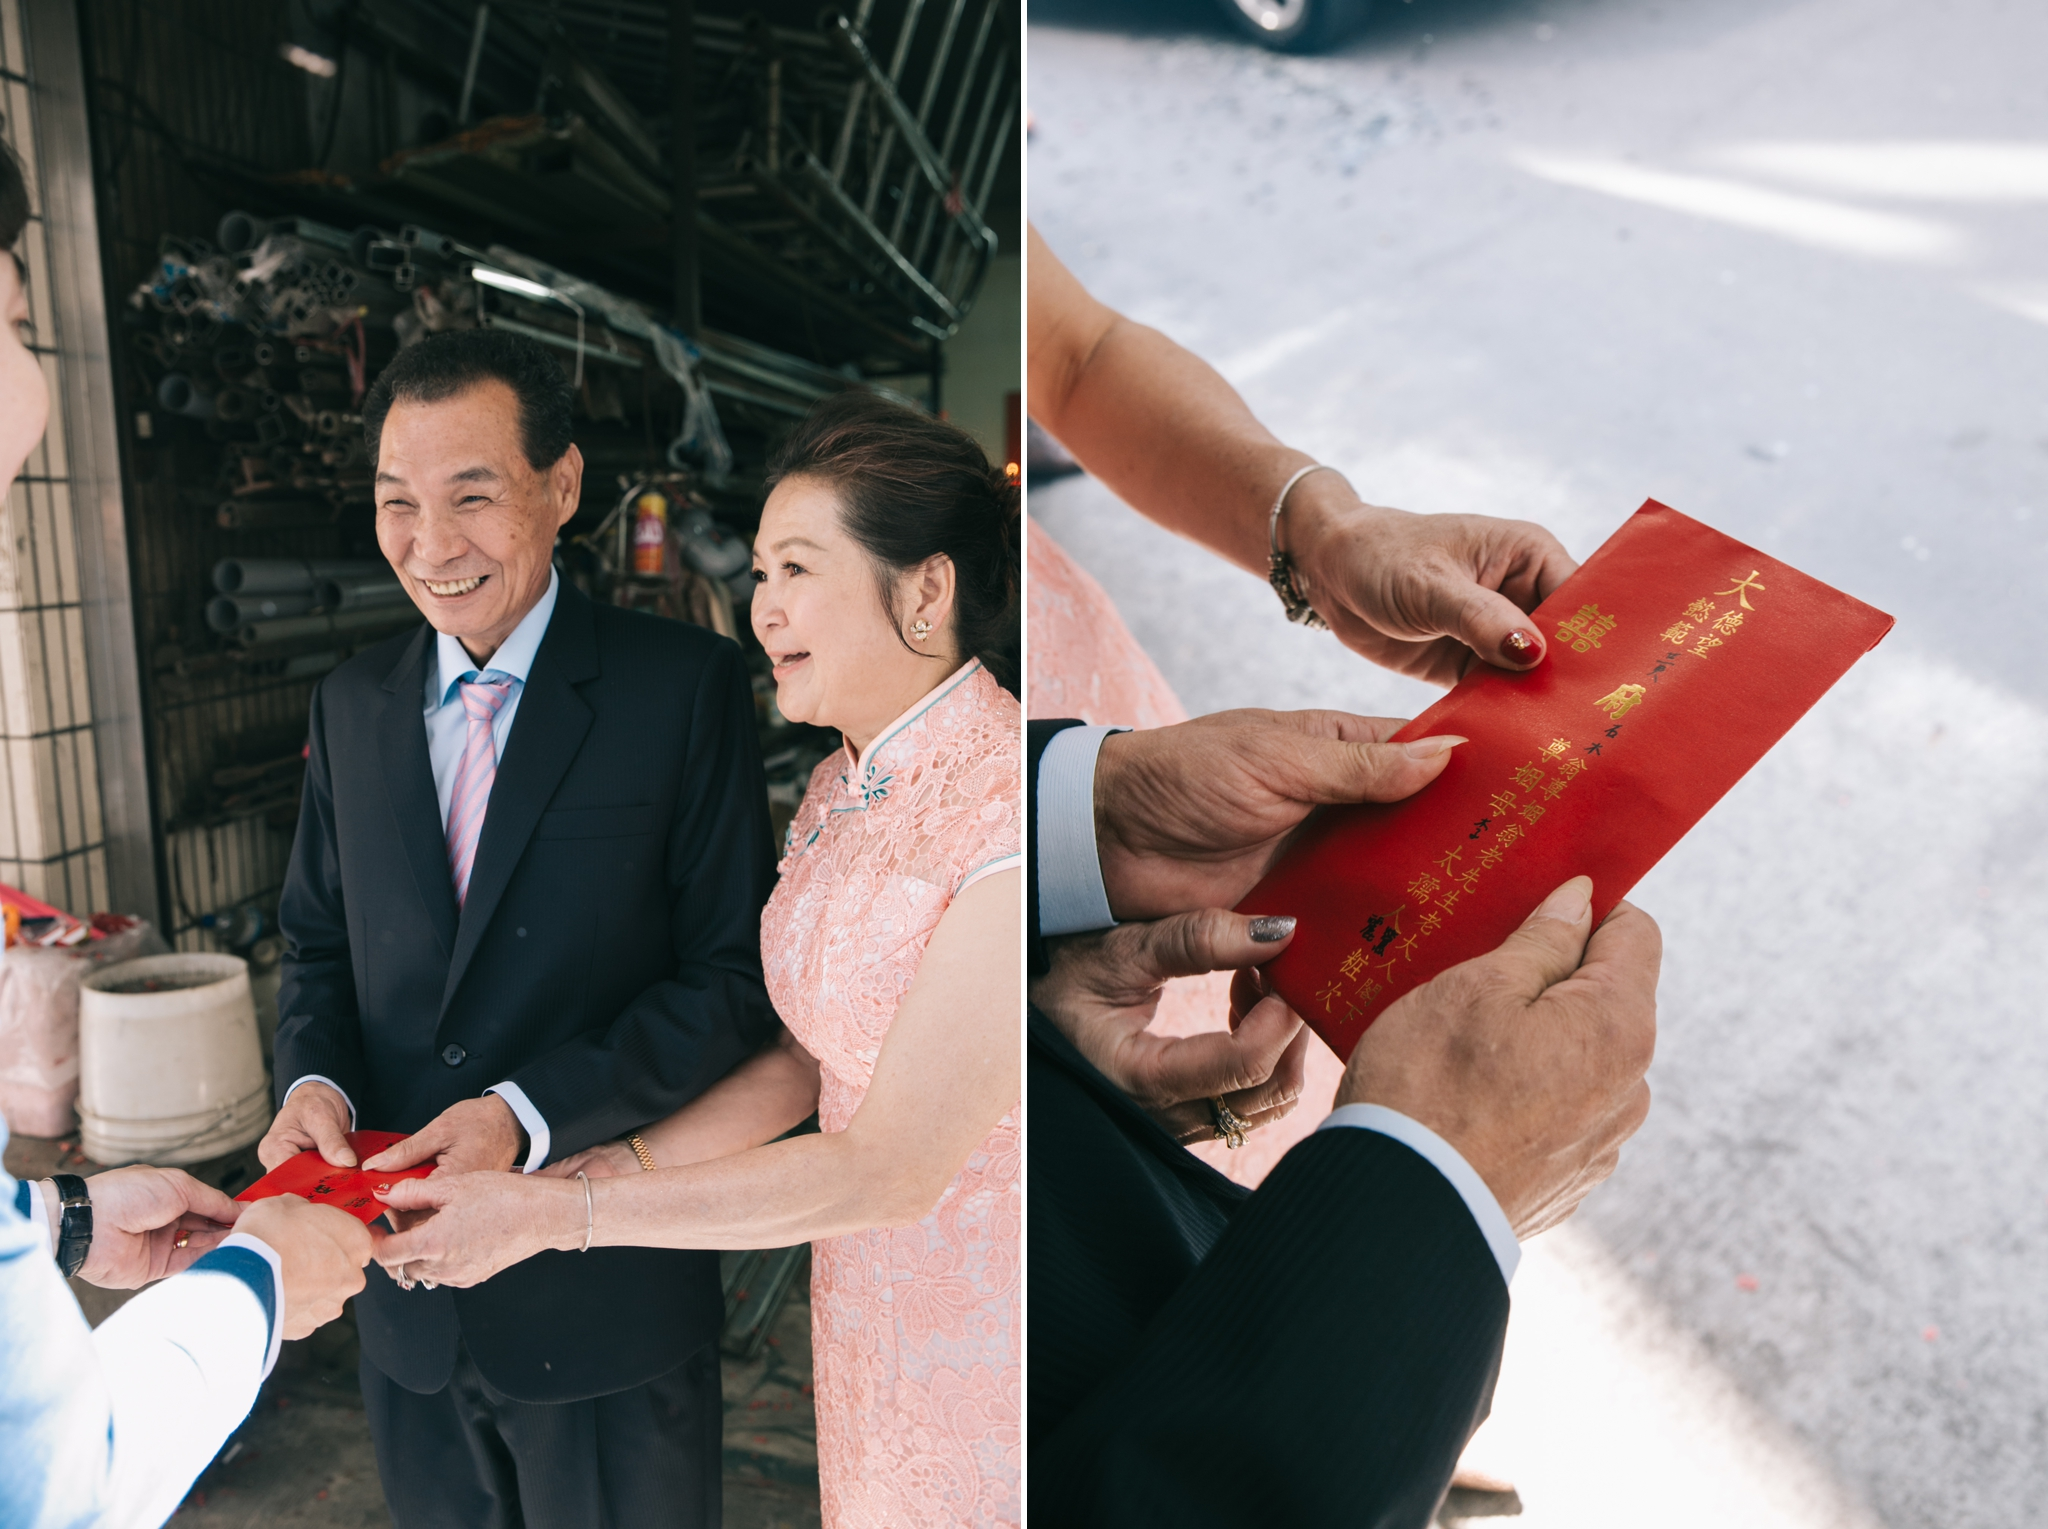 Keddy+Richard-wedding-新莊頤品飯店-118.jpg